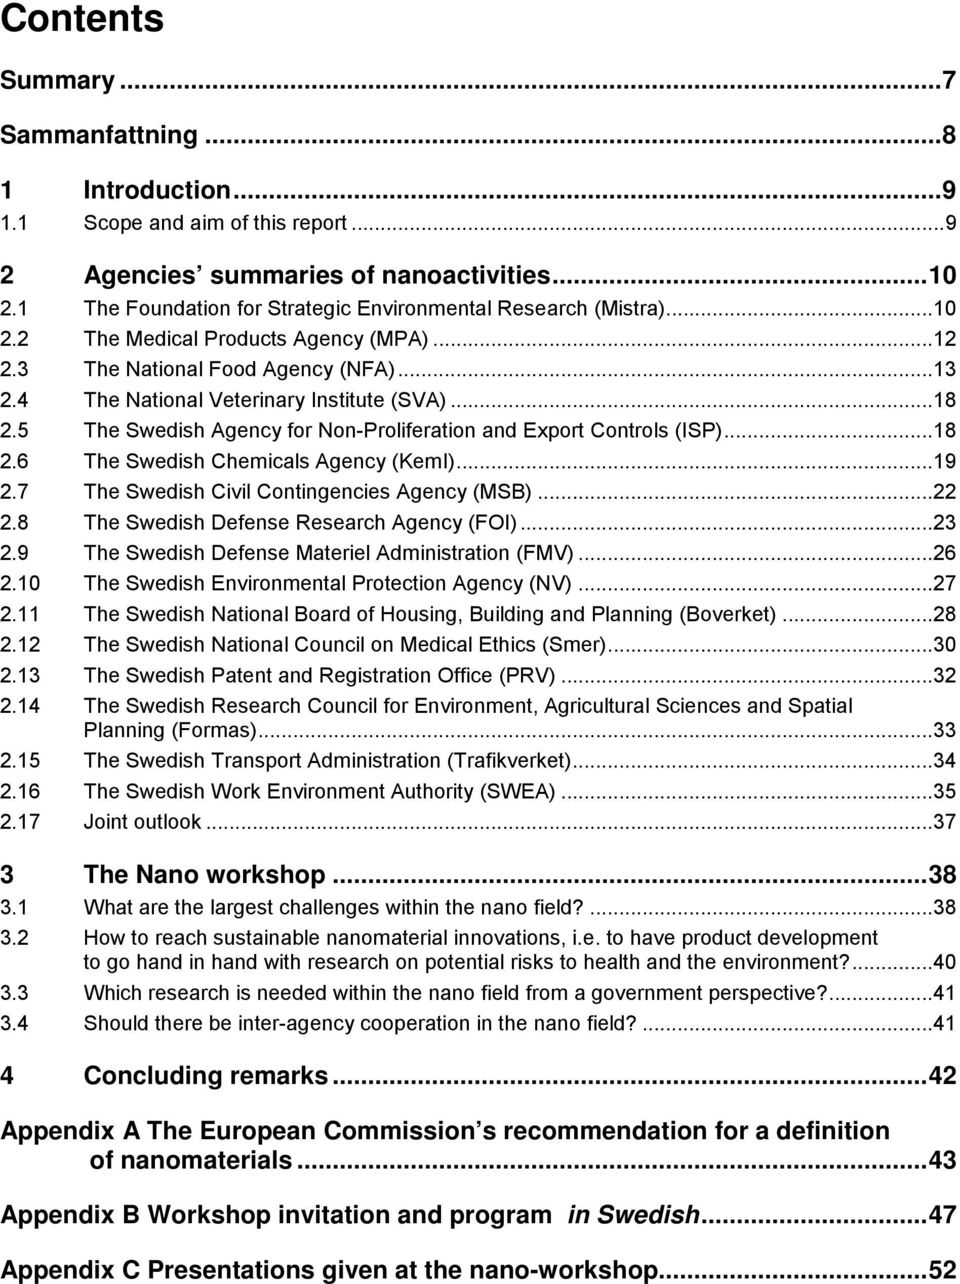 5 The Swedish Agency for Non-Proliferation and Export Controls (ISP)...18 2.6 The Swedish Chemicals Agency (KemI)...19 2.7 The Swedish Civil Contingencies Agency (MSB)...22 2.